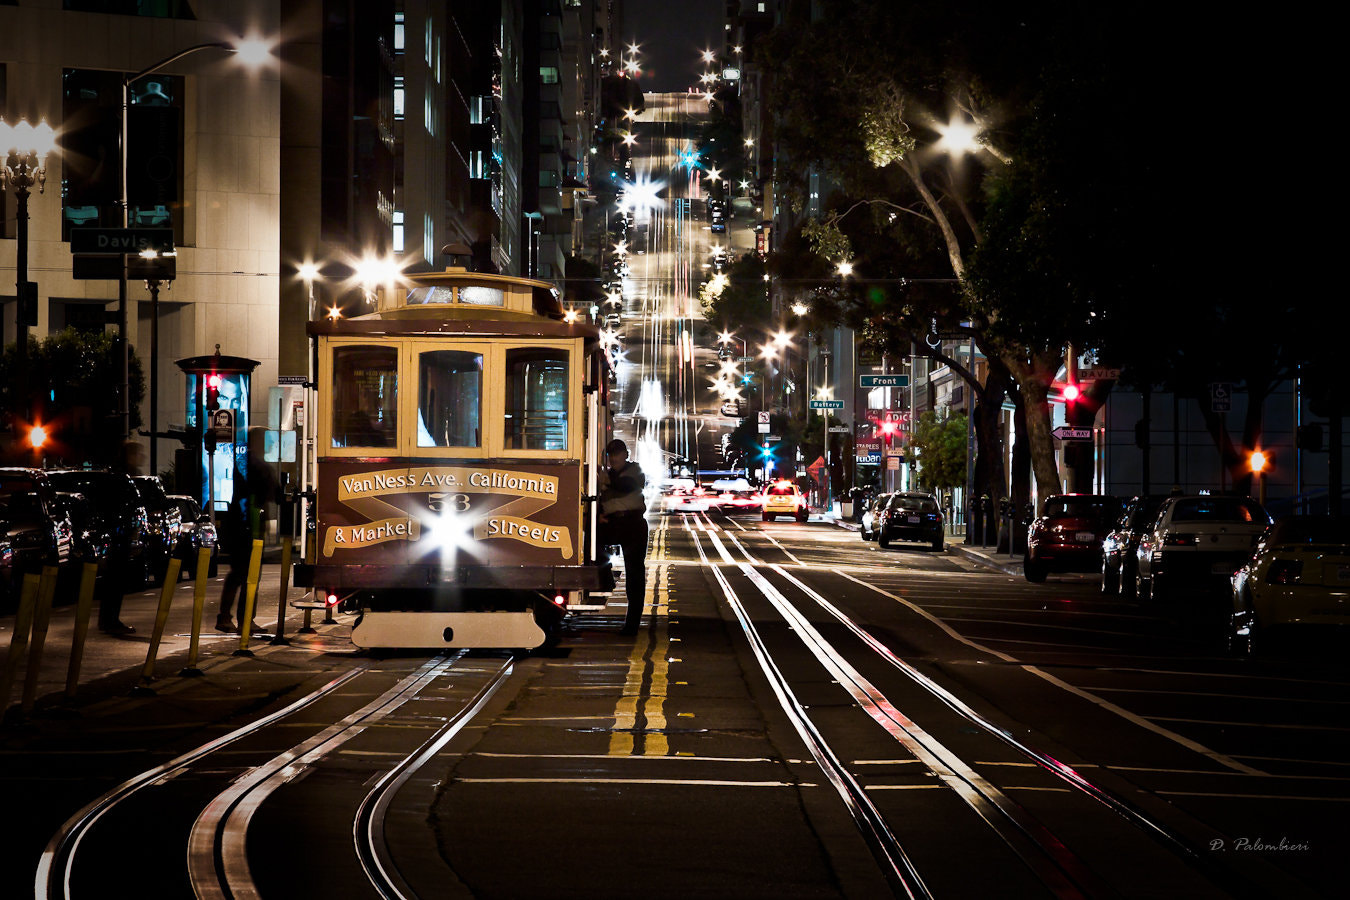 Photograph Cable Car in California St - San Francisco by Dominique  Palombieri on 500px